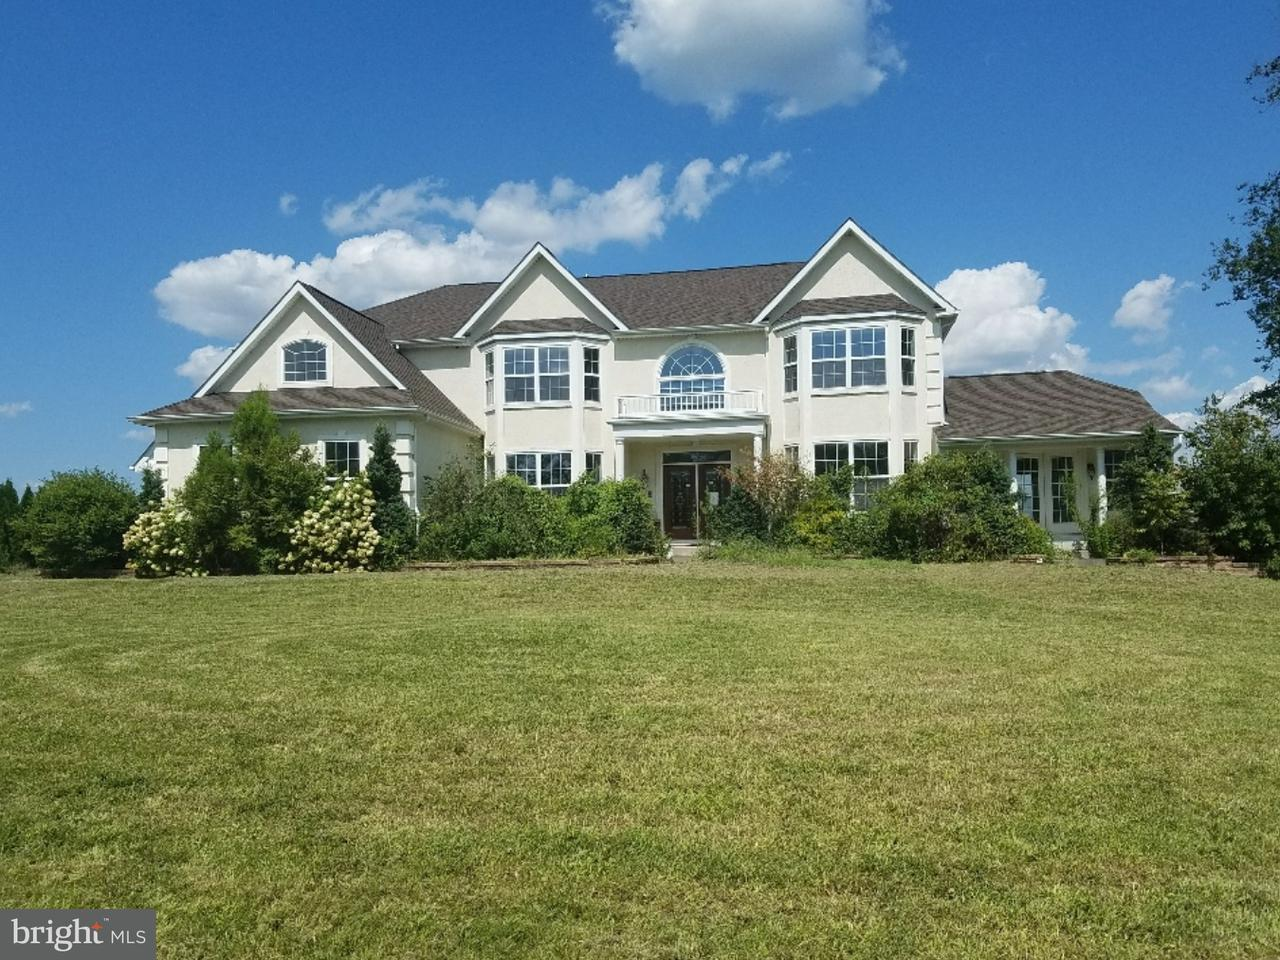 Single Family Home for Sale at 11 AMETHYST Court Swedesboro, New Jersey 08085 United States